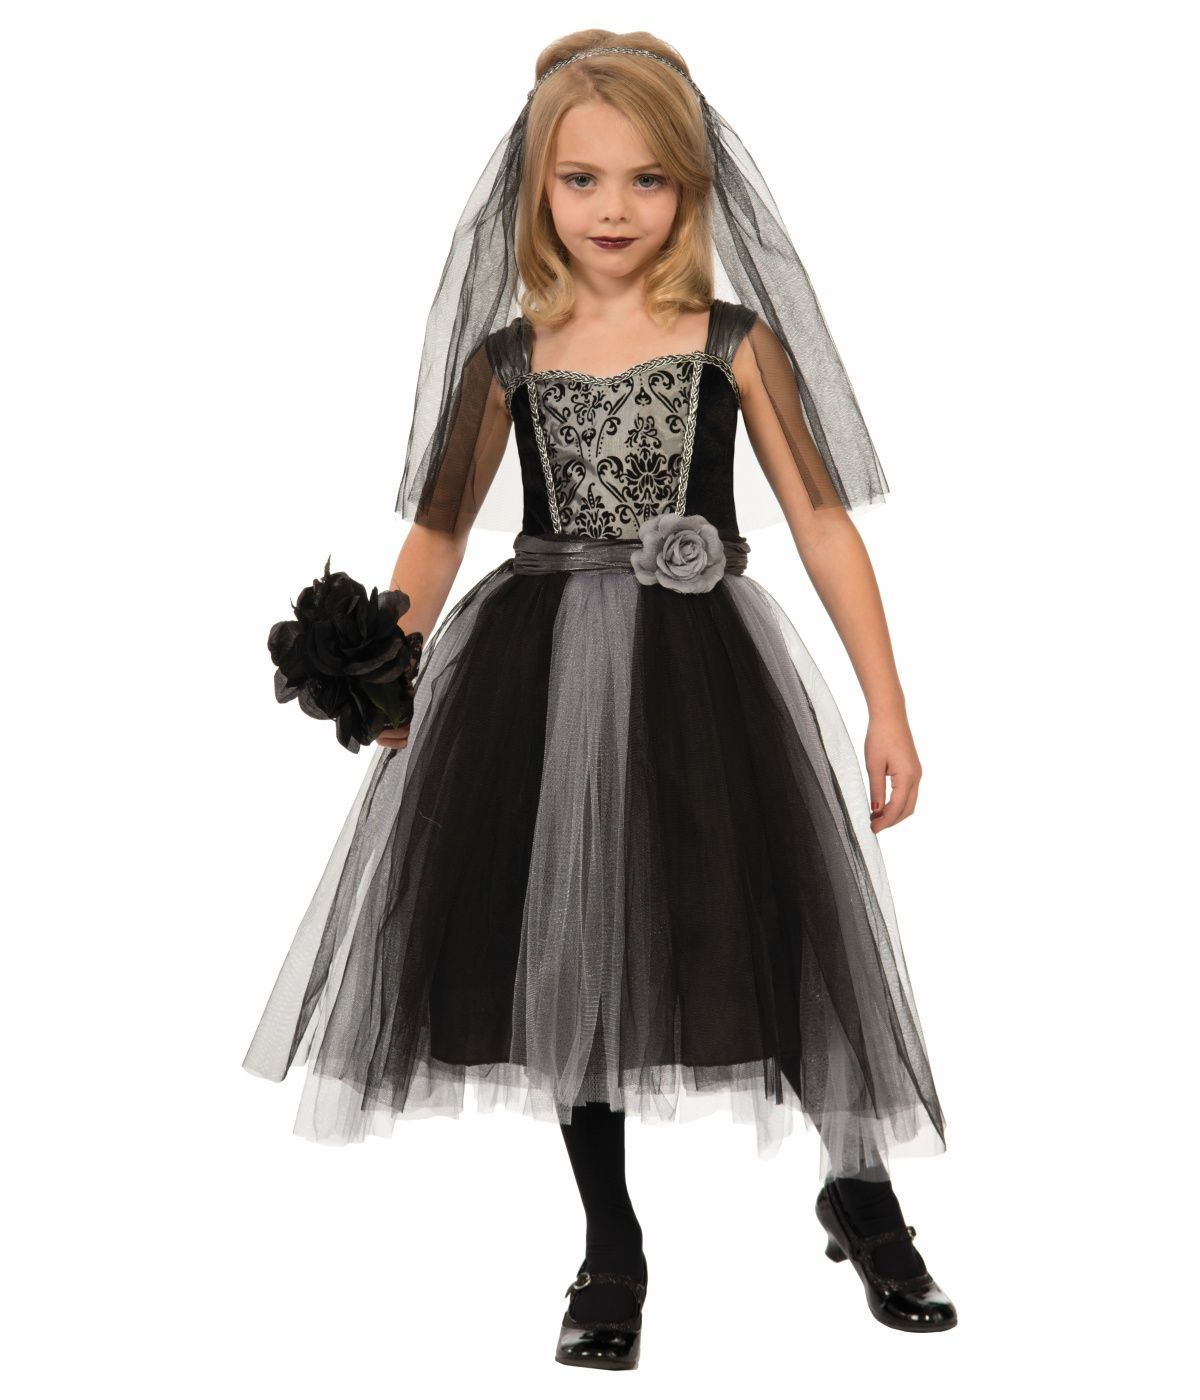 kid balerinas | Gothic Ballerina Child Costume - Kids Halloween ...